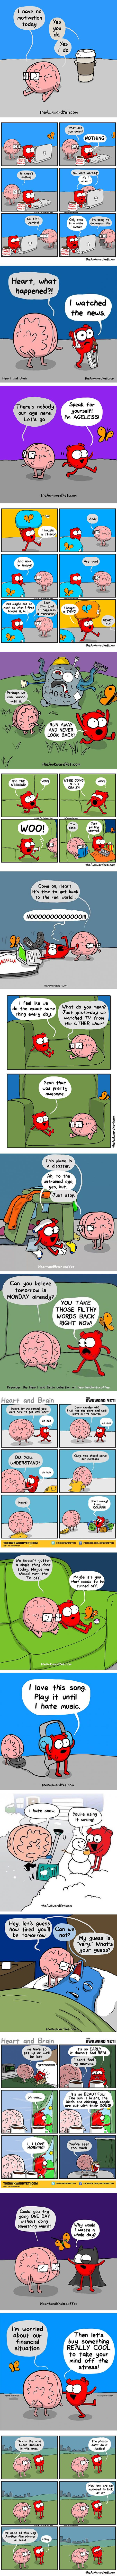 20 Comic Strips About the Eternal Struggle Between the Heart and Brain